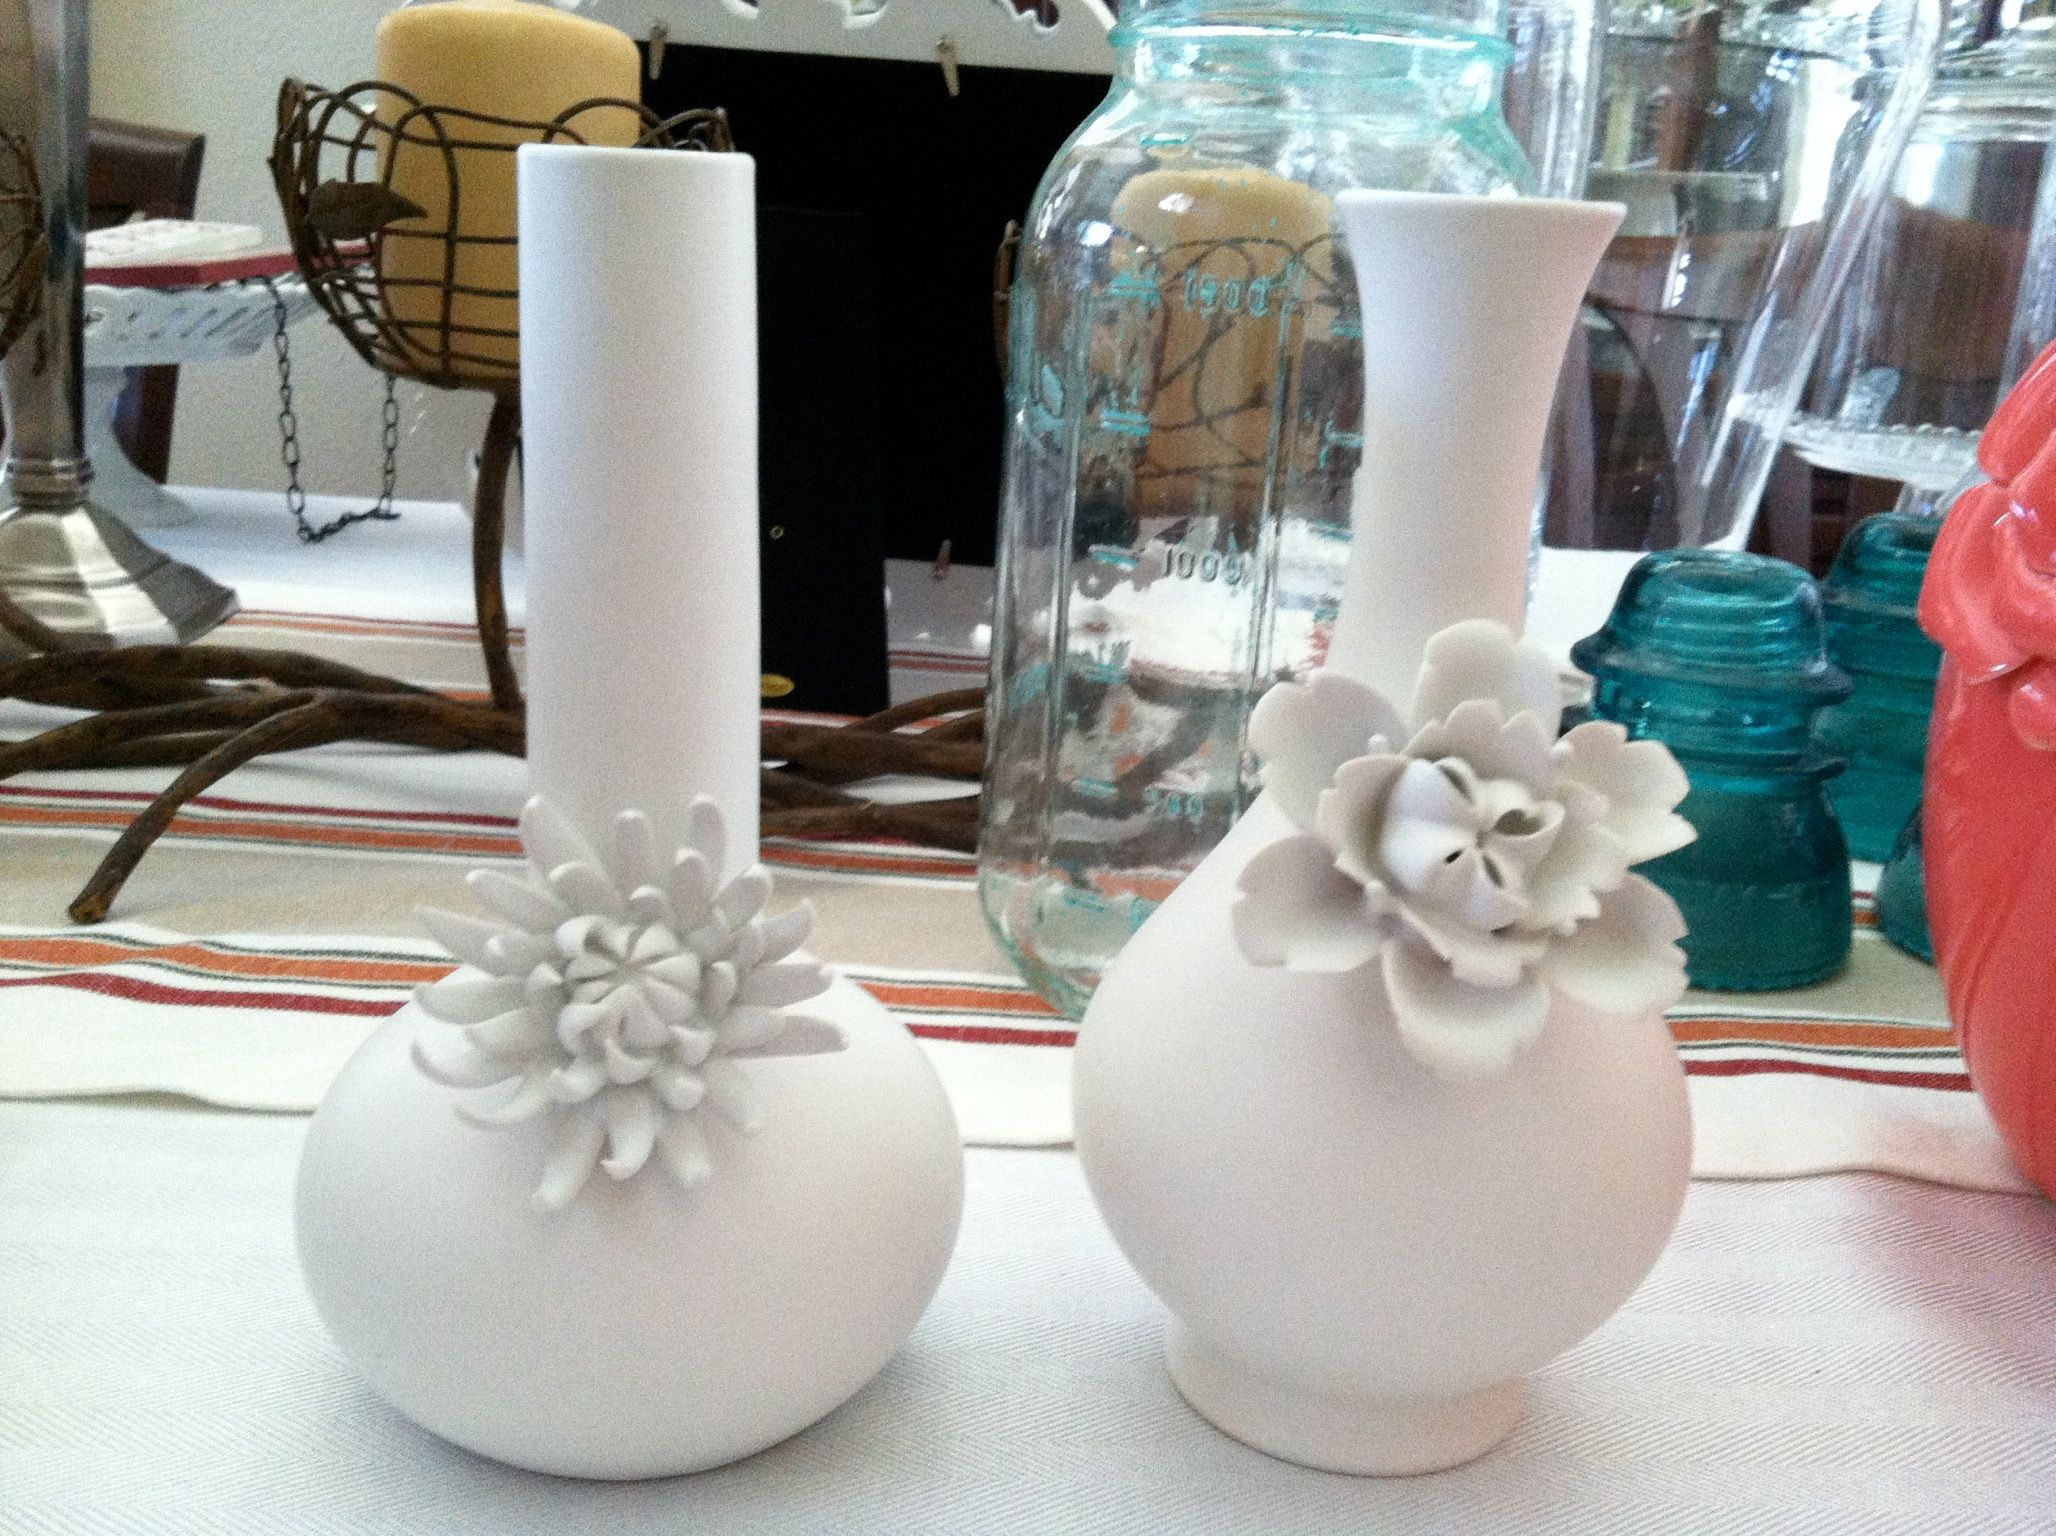 Found these cute vases at cost plus world market and reminded me found these cute vases at cost plus world market and reminded me of anthropologie vases for reviewsmspy